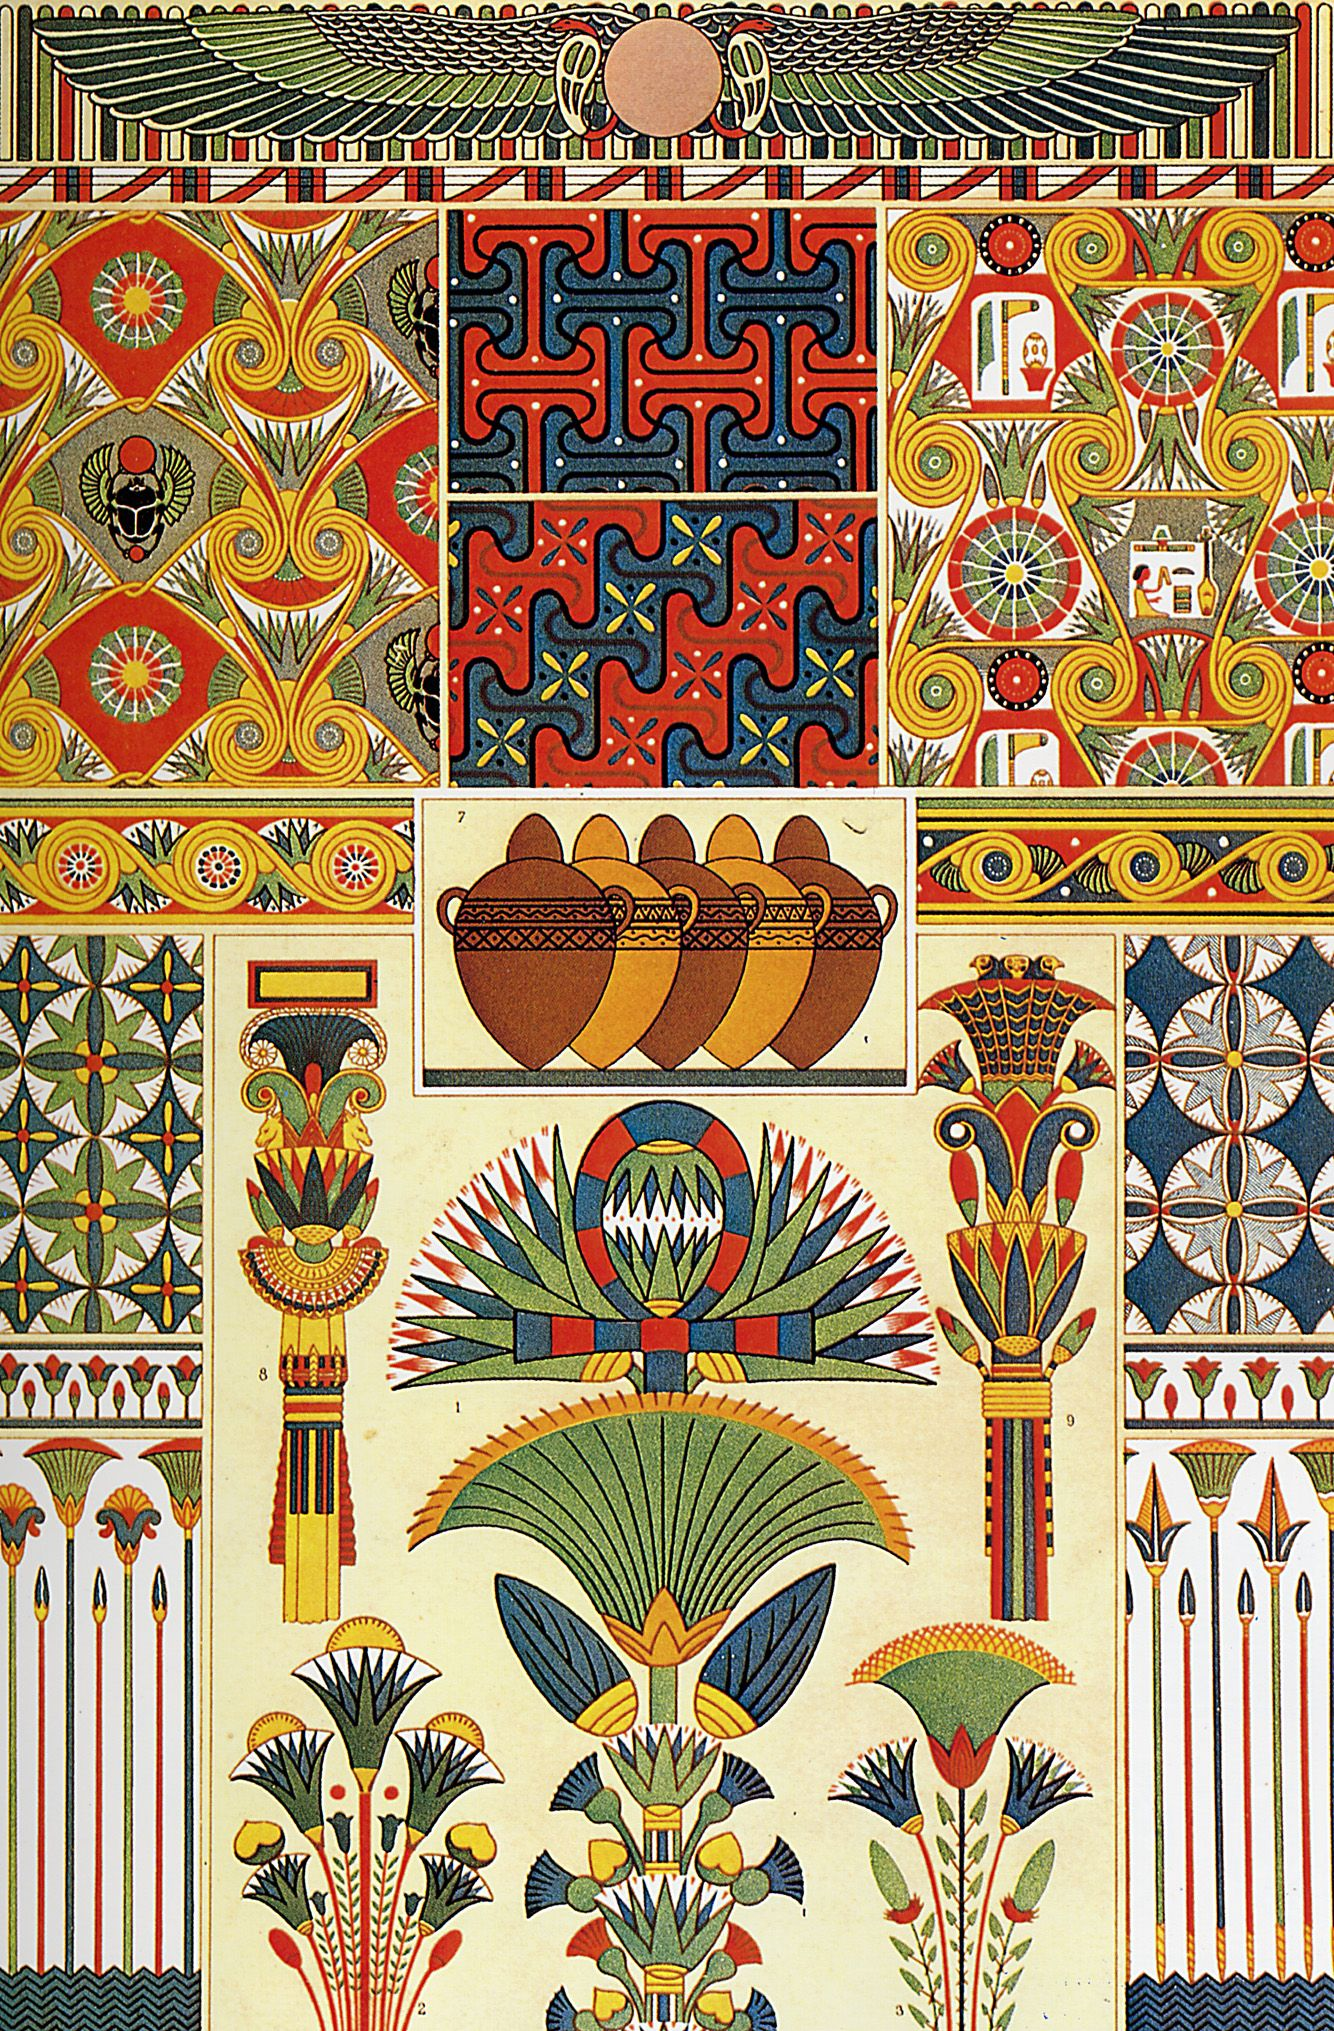 Ancient Egypt Ornaments Owen Joness The Grammar Of Ornament Originally Published In 1856 Examples Of Egyptian Patterns With The Shared Colour Palette Of